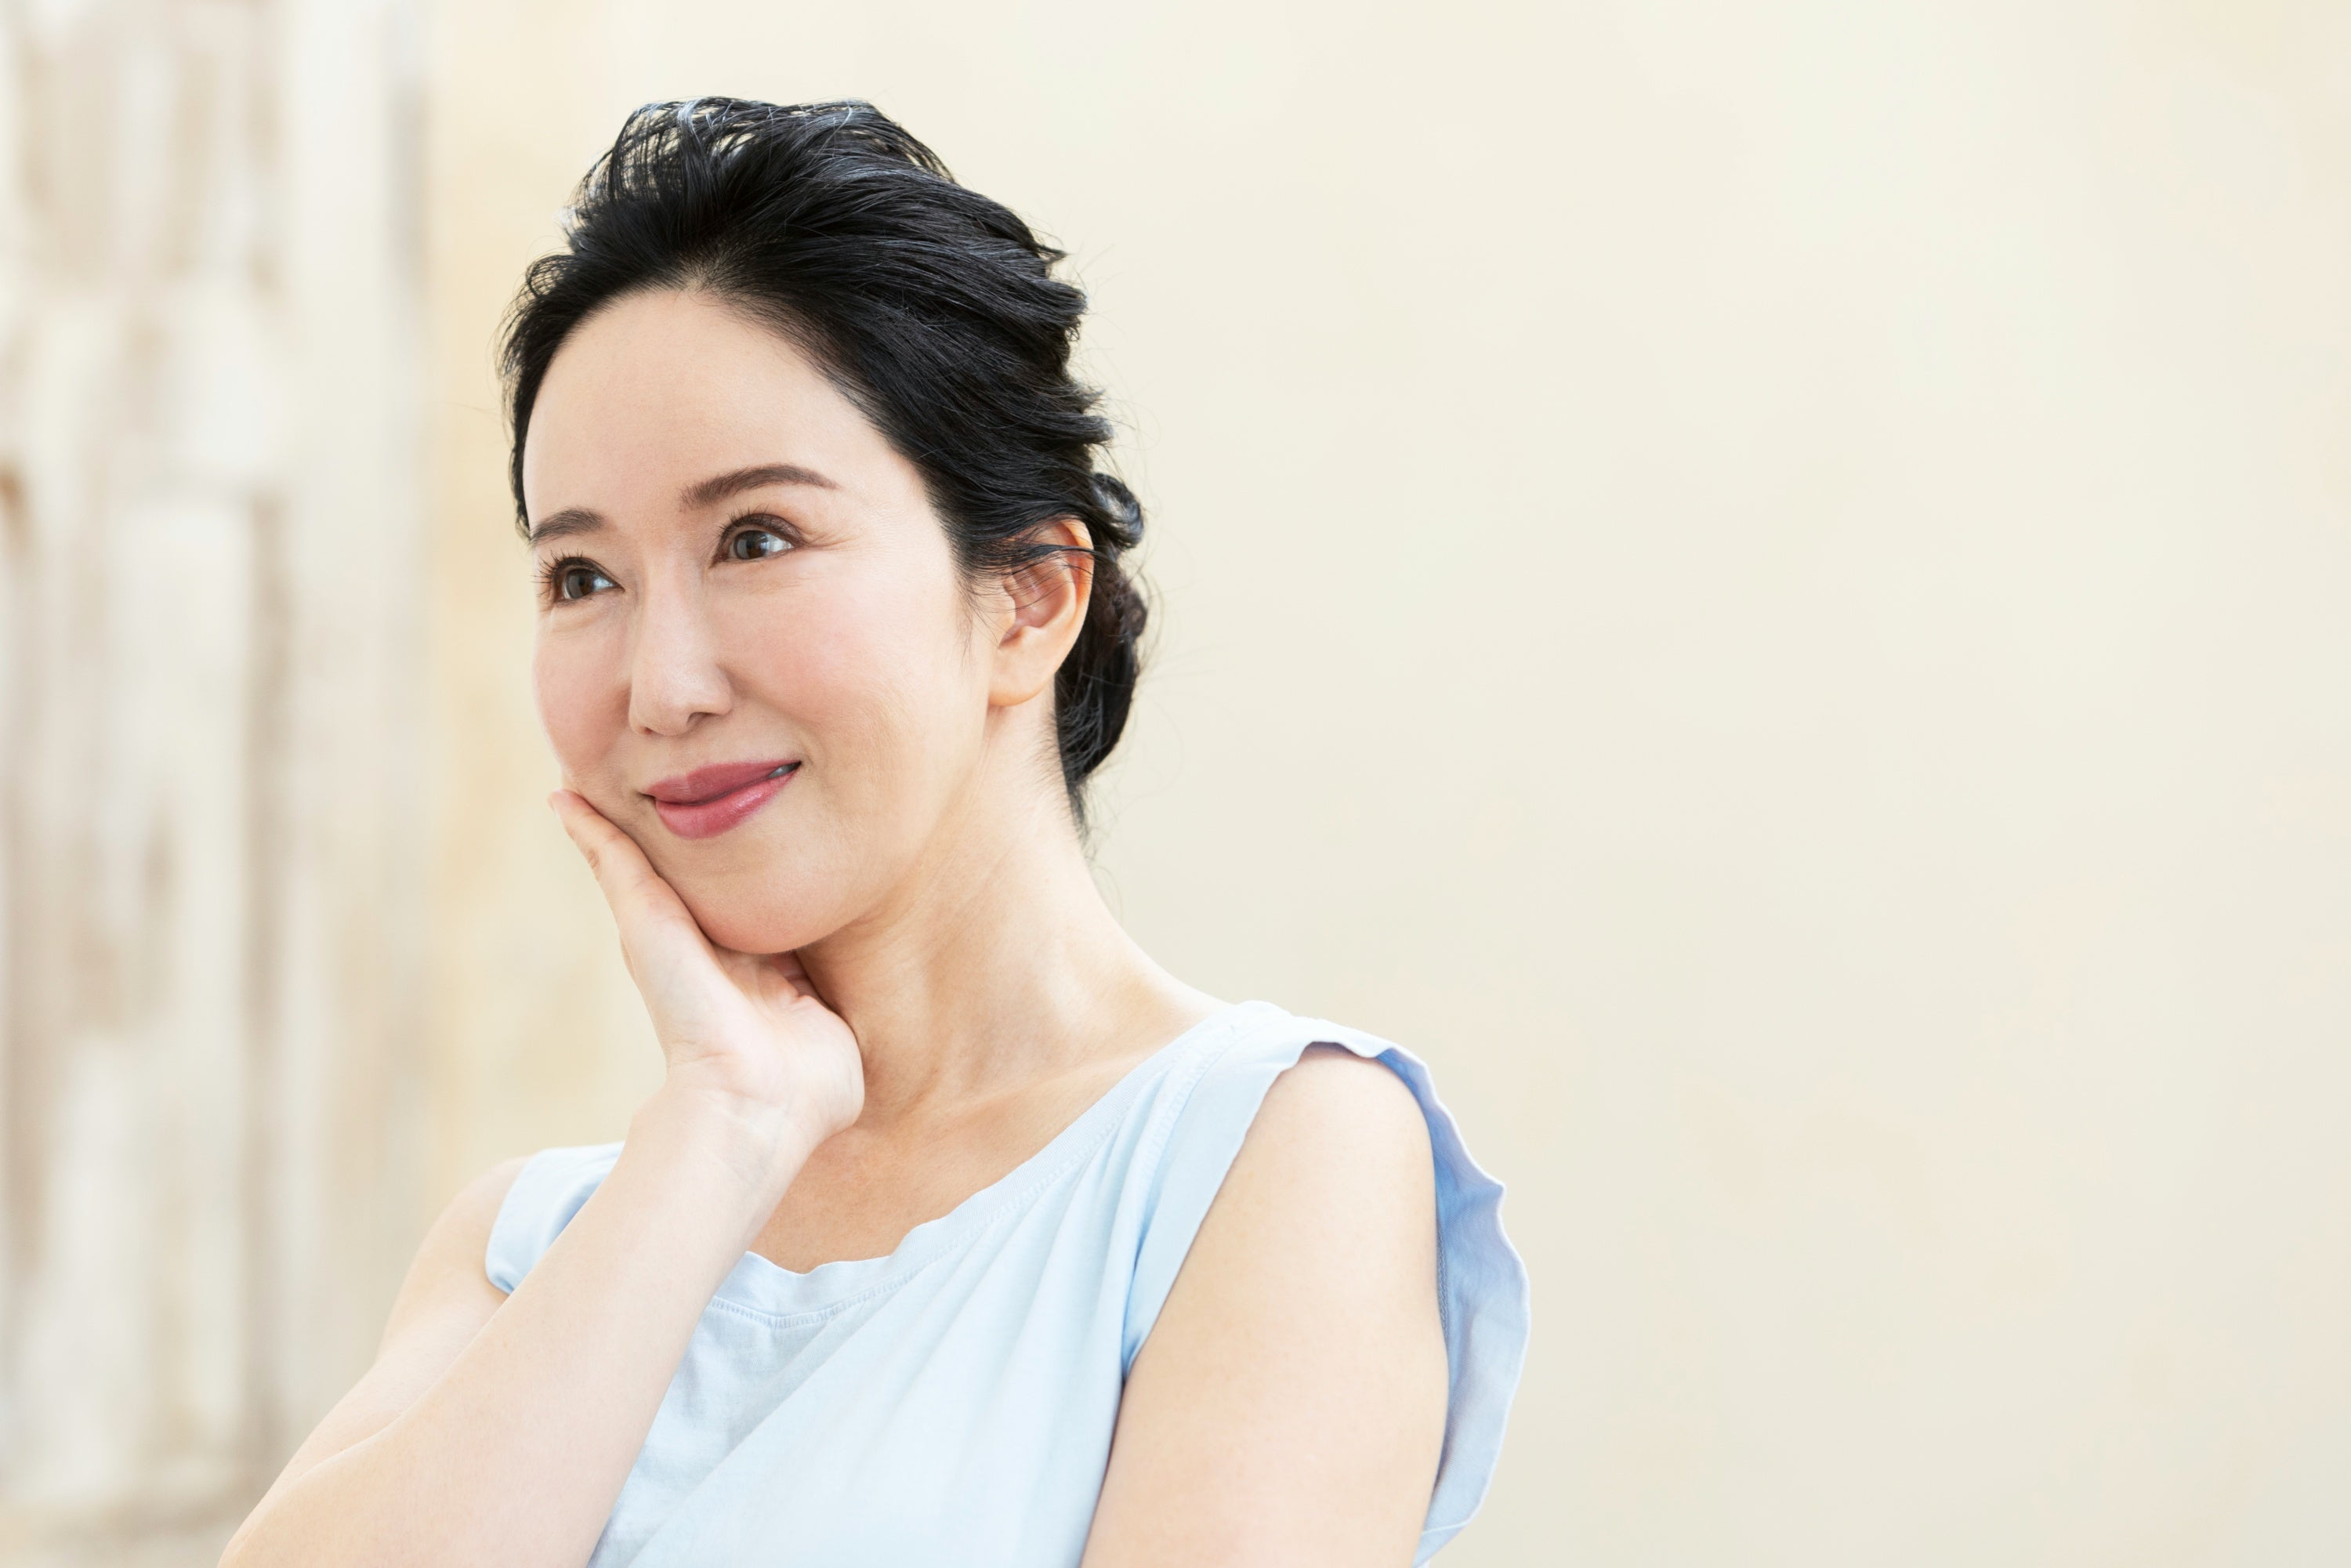 An Asian woman in her 40s with a nice skin touching her face